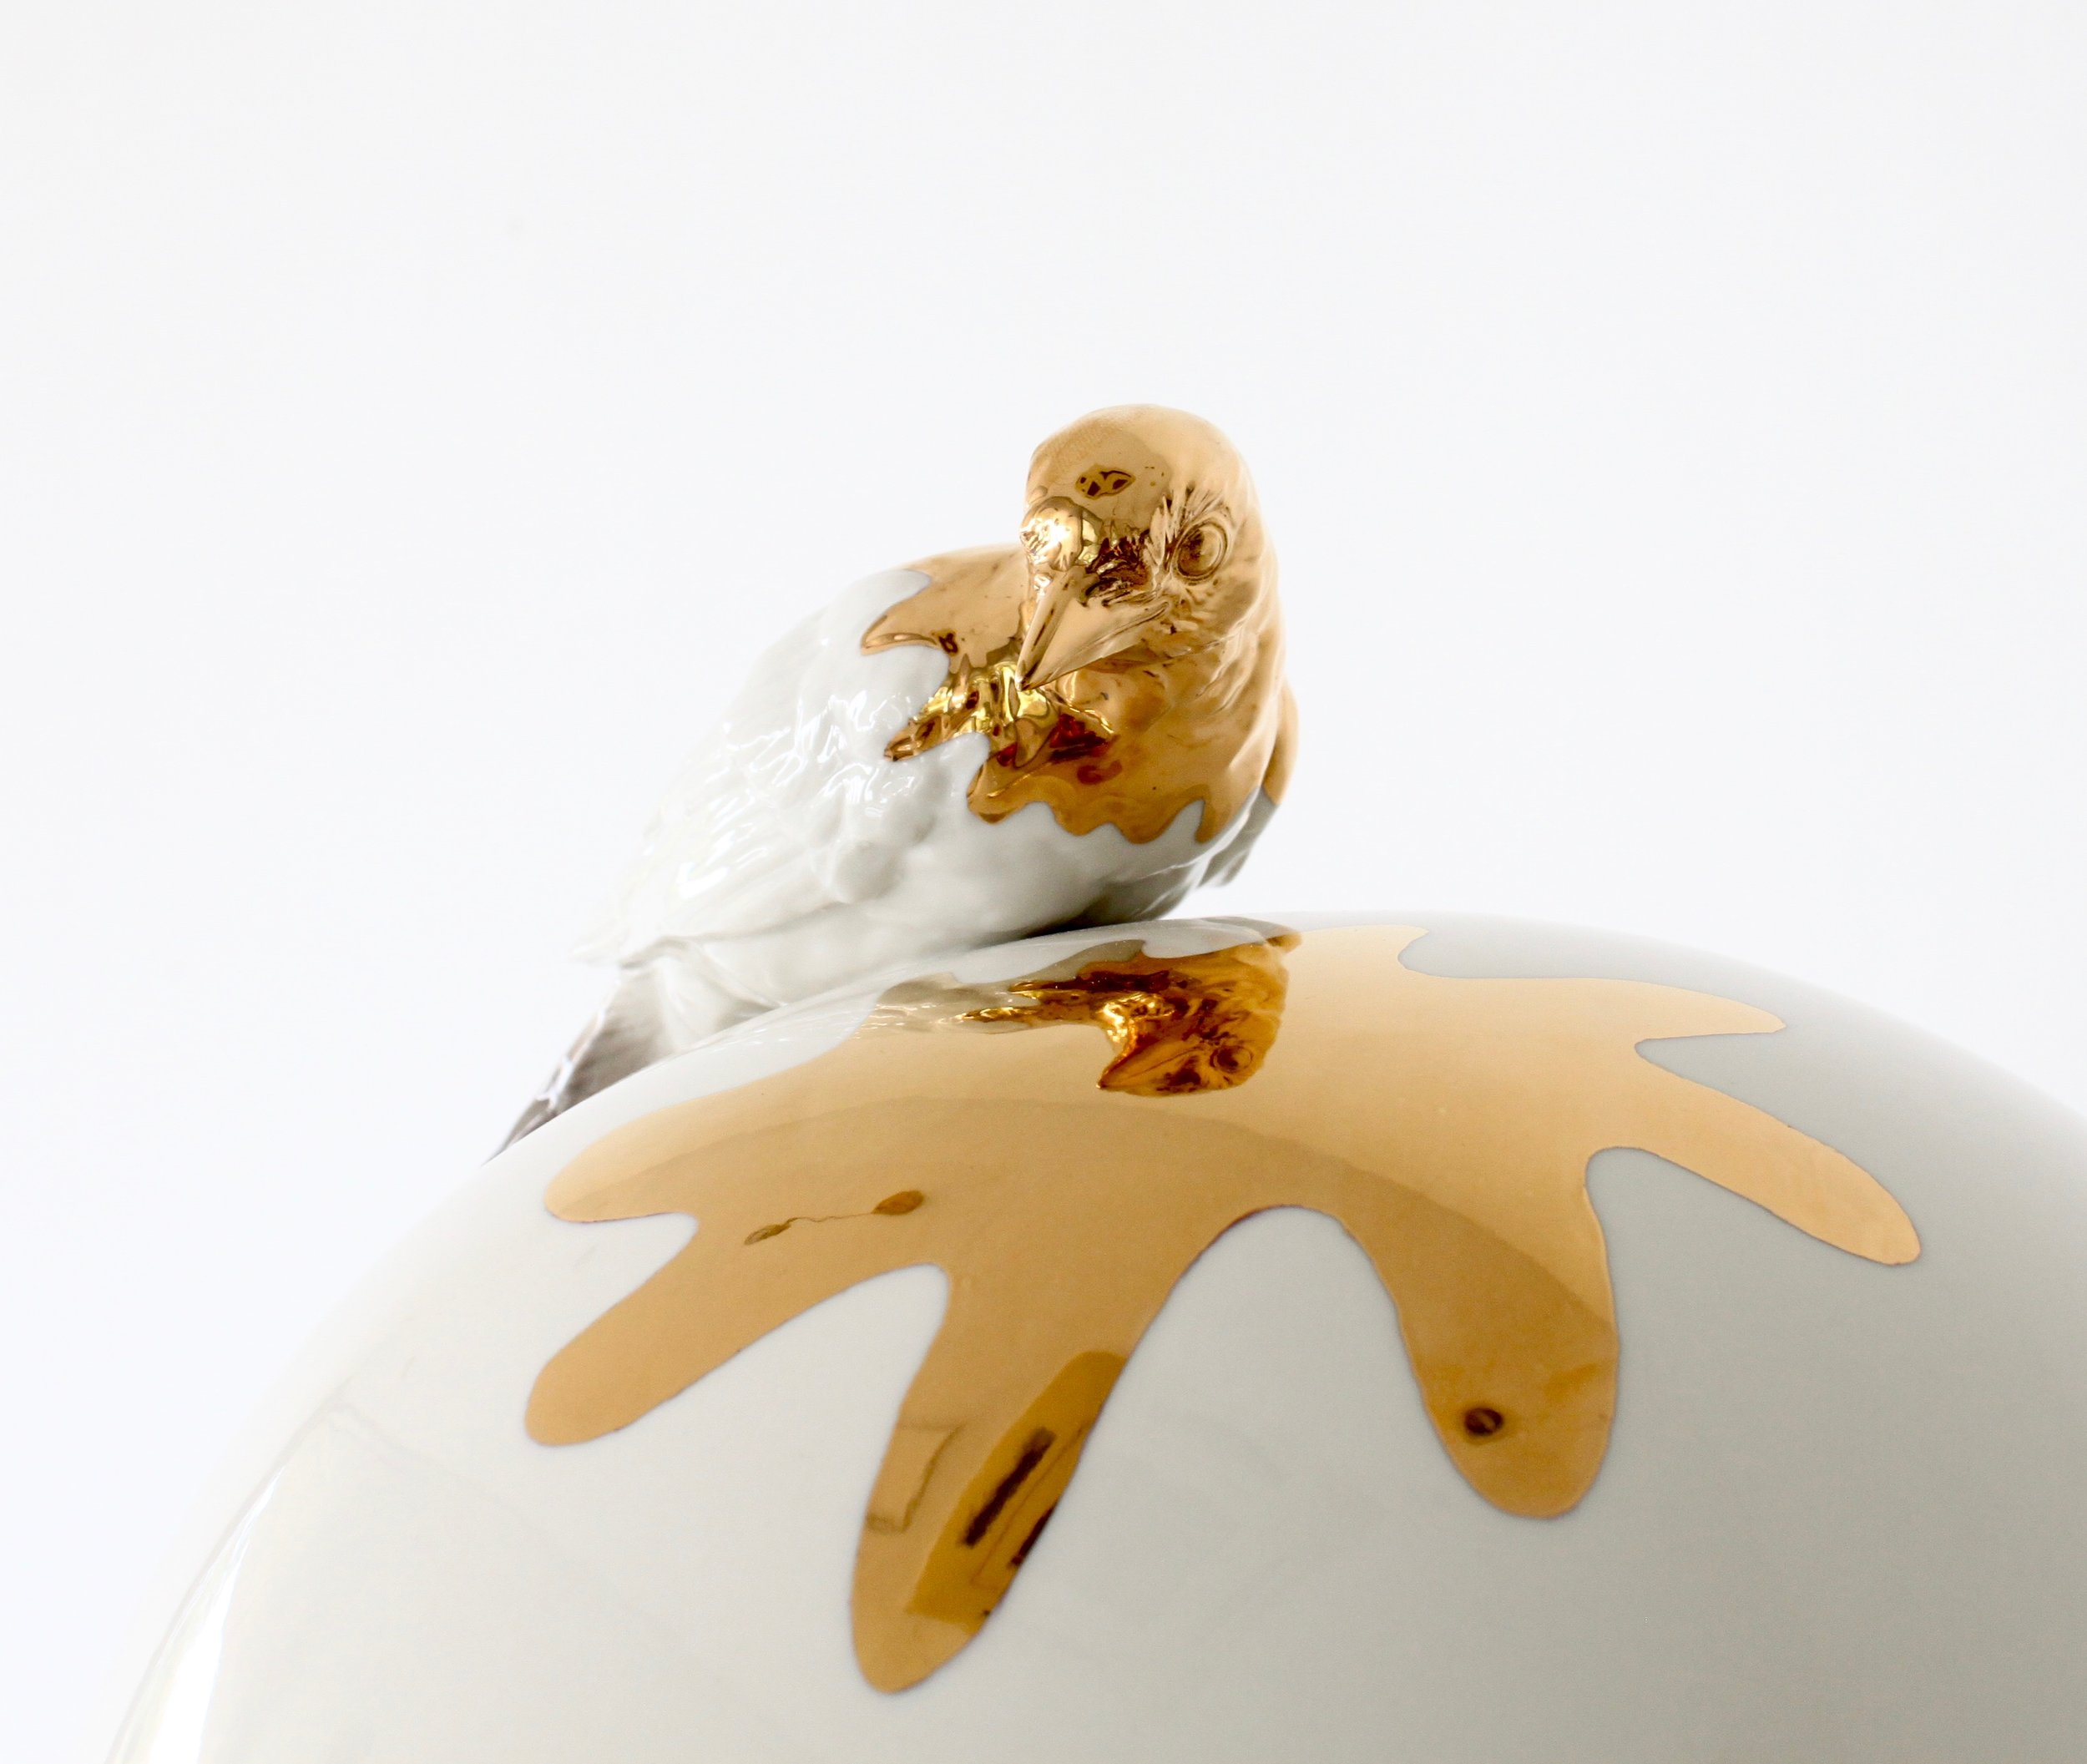 Egg vase small Gold bird detail - 1.jpg